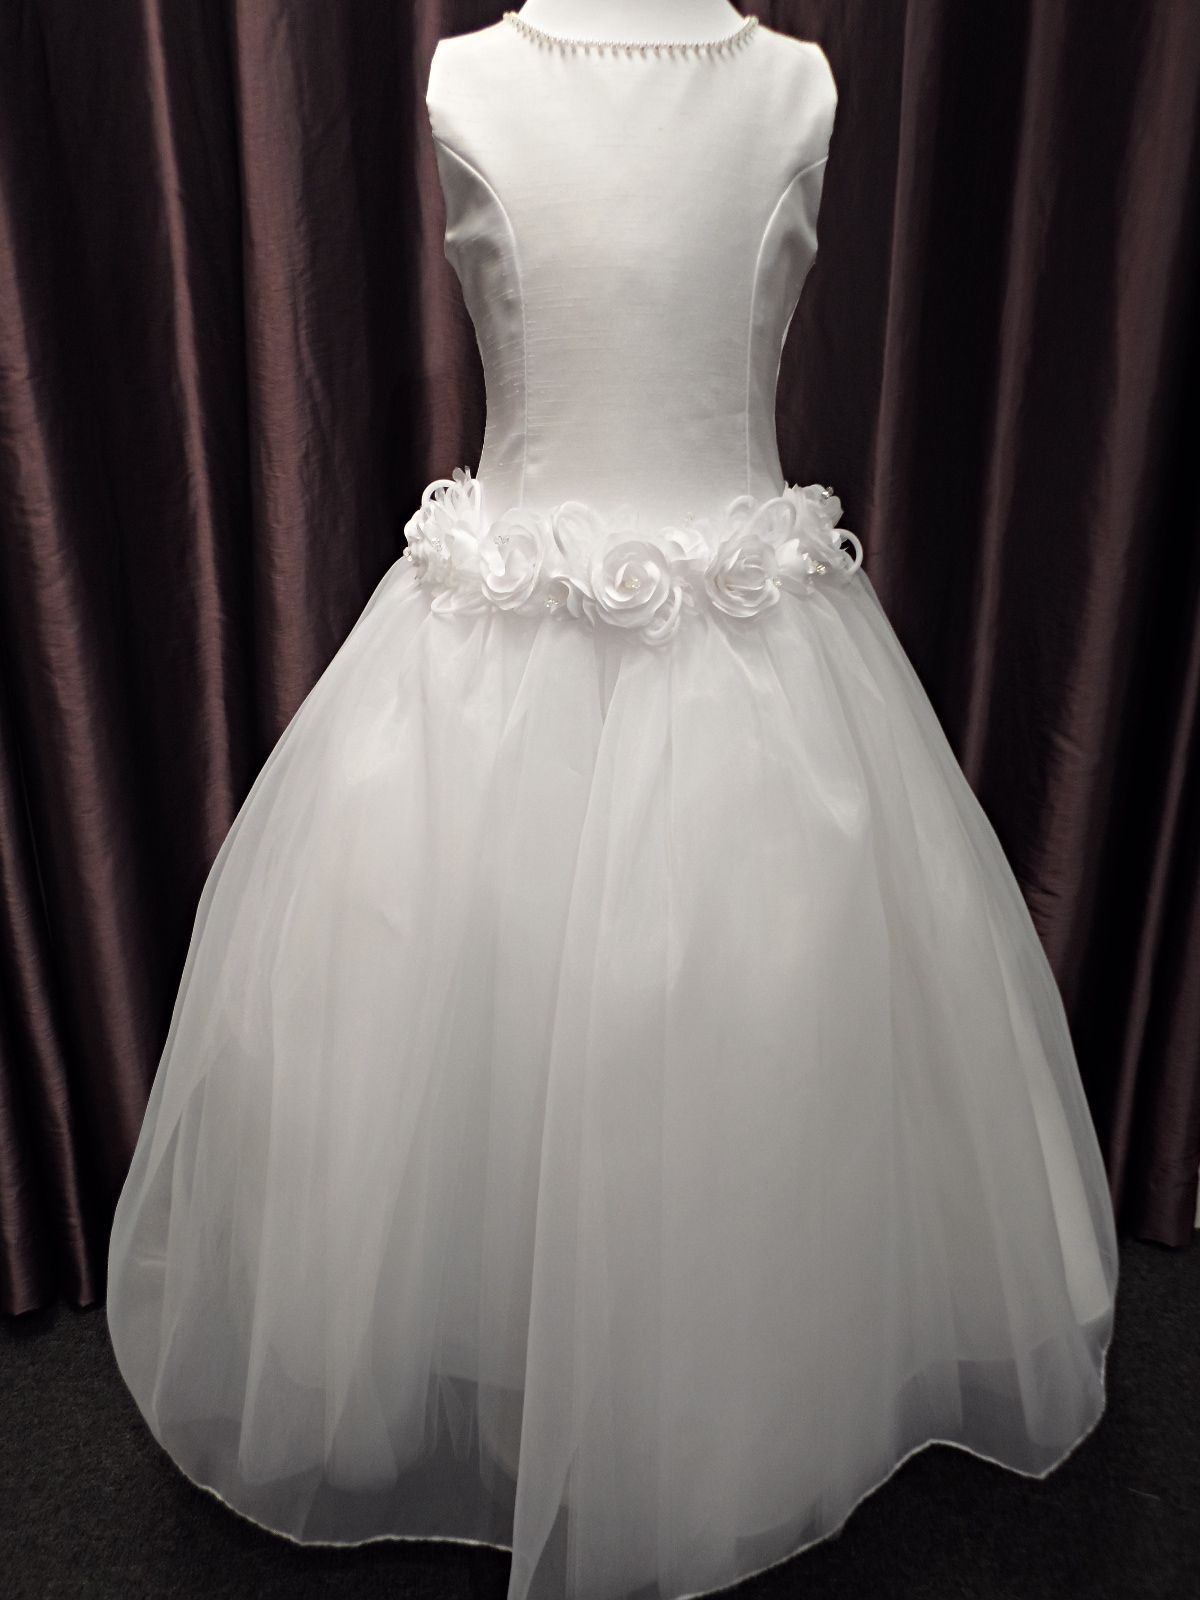 #ChristieHelene #Communion #Communiondress